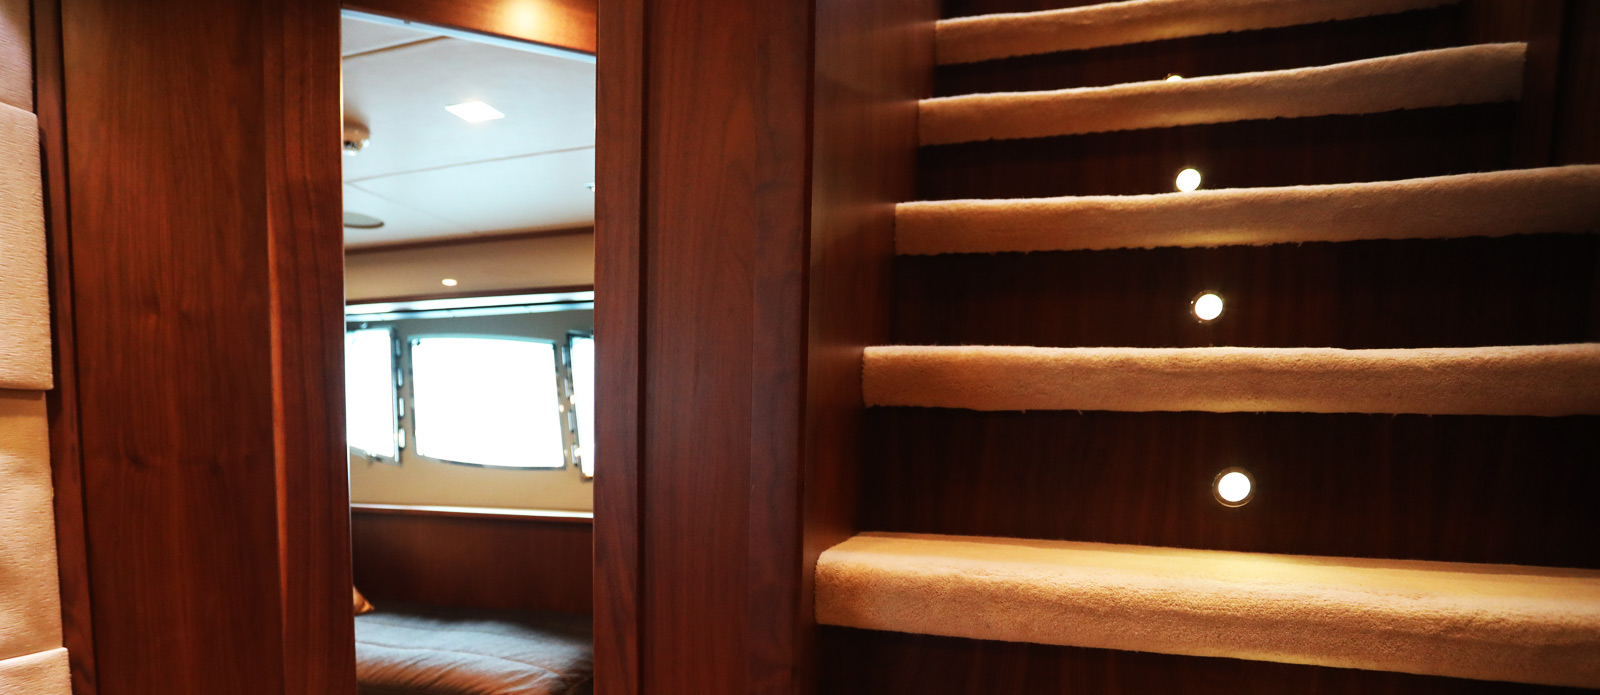 Sunseeker-30-Metre-Yacht-Coraysa-Lower-Deck-Lobby